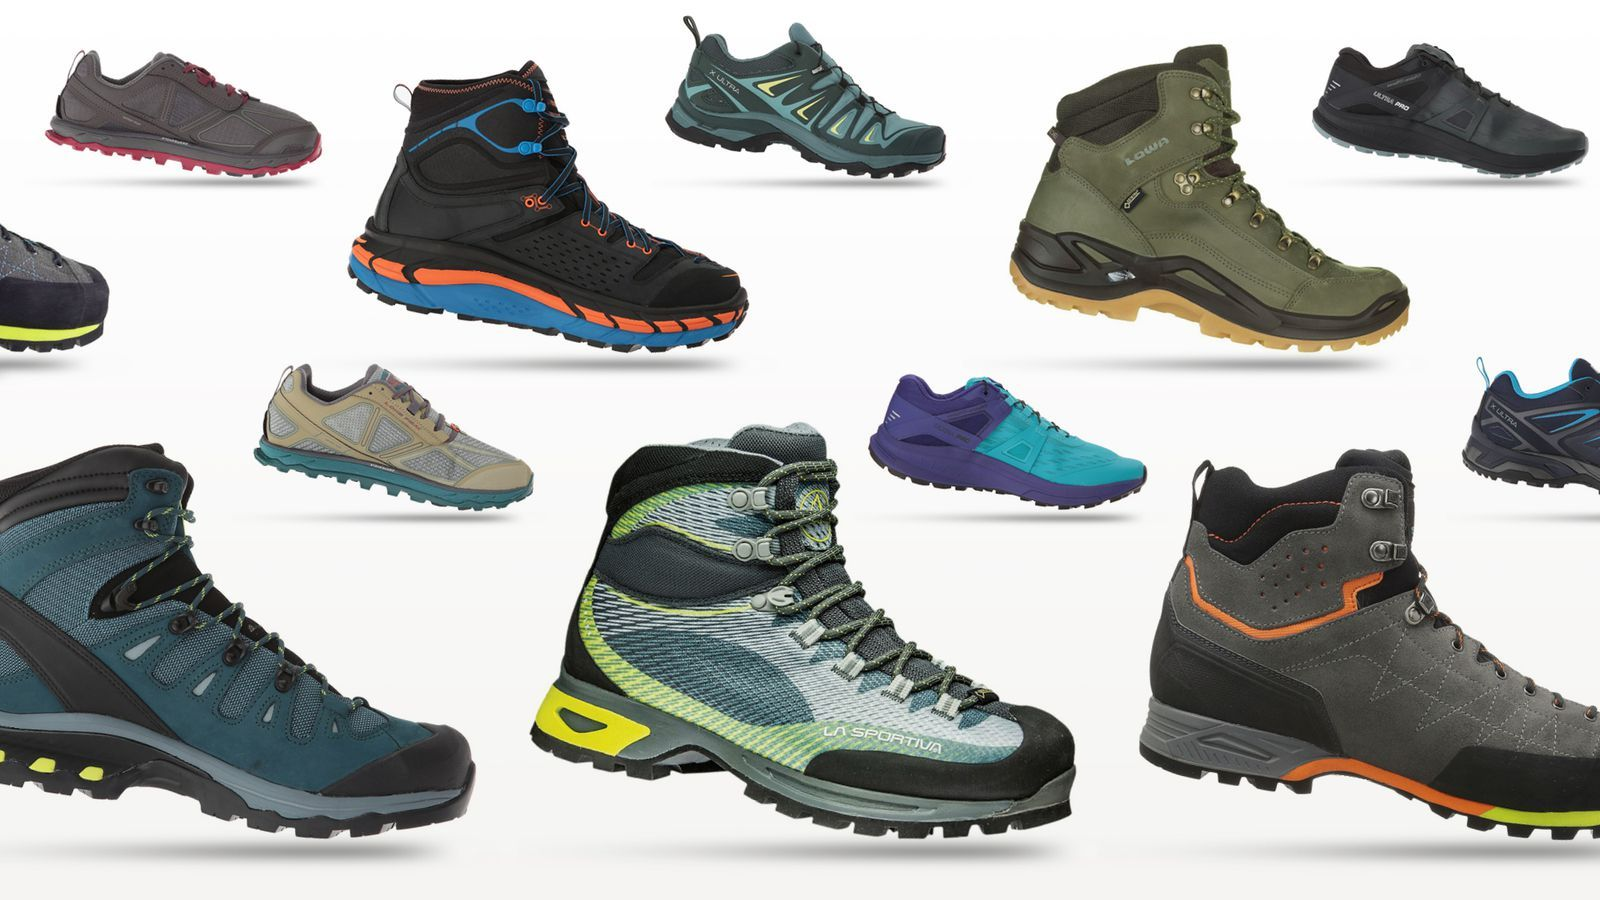 2020 Best Hiking Boots Best Hiking Boots 2019 | New Hiking Boots and Trail Running Shoes